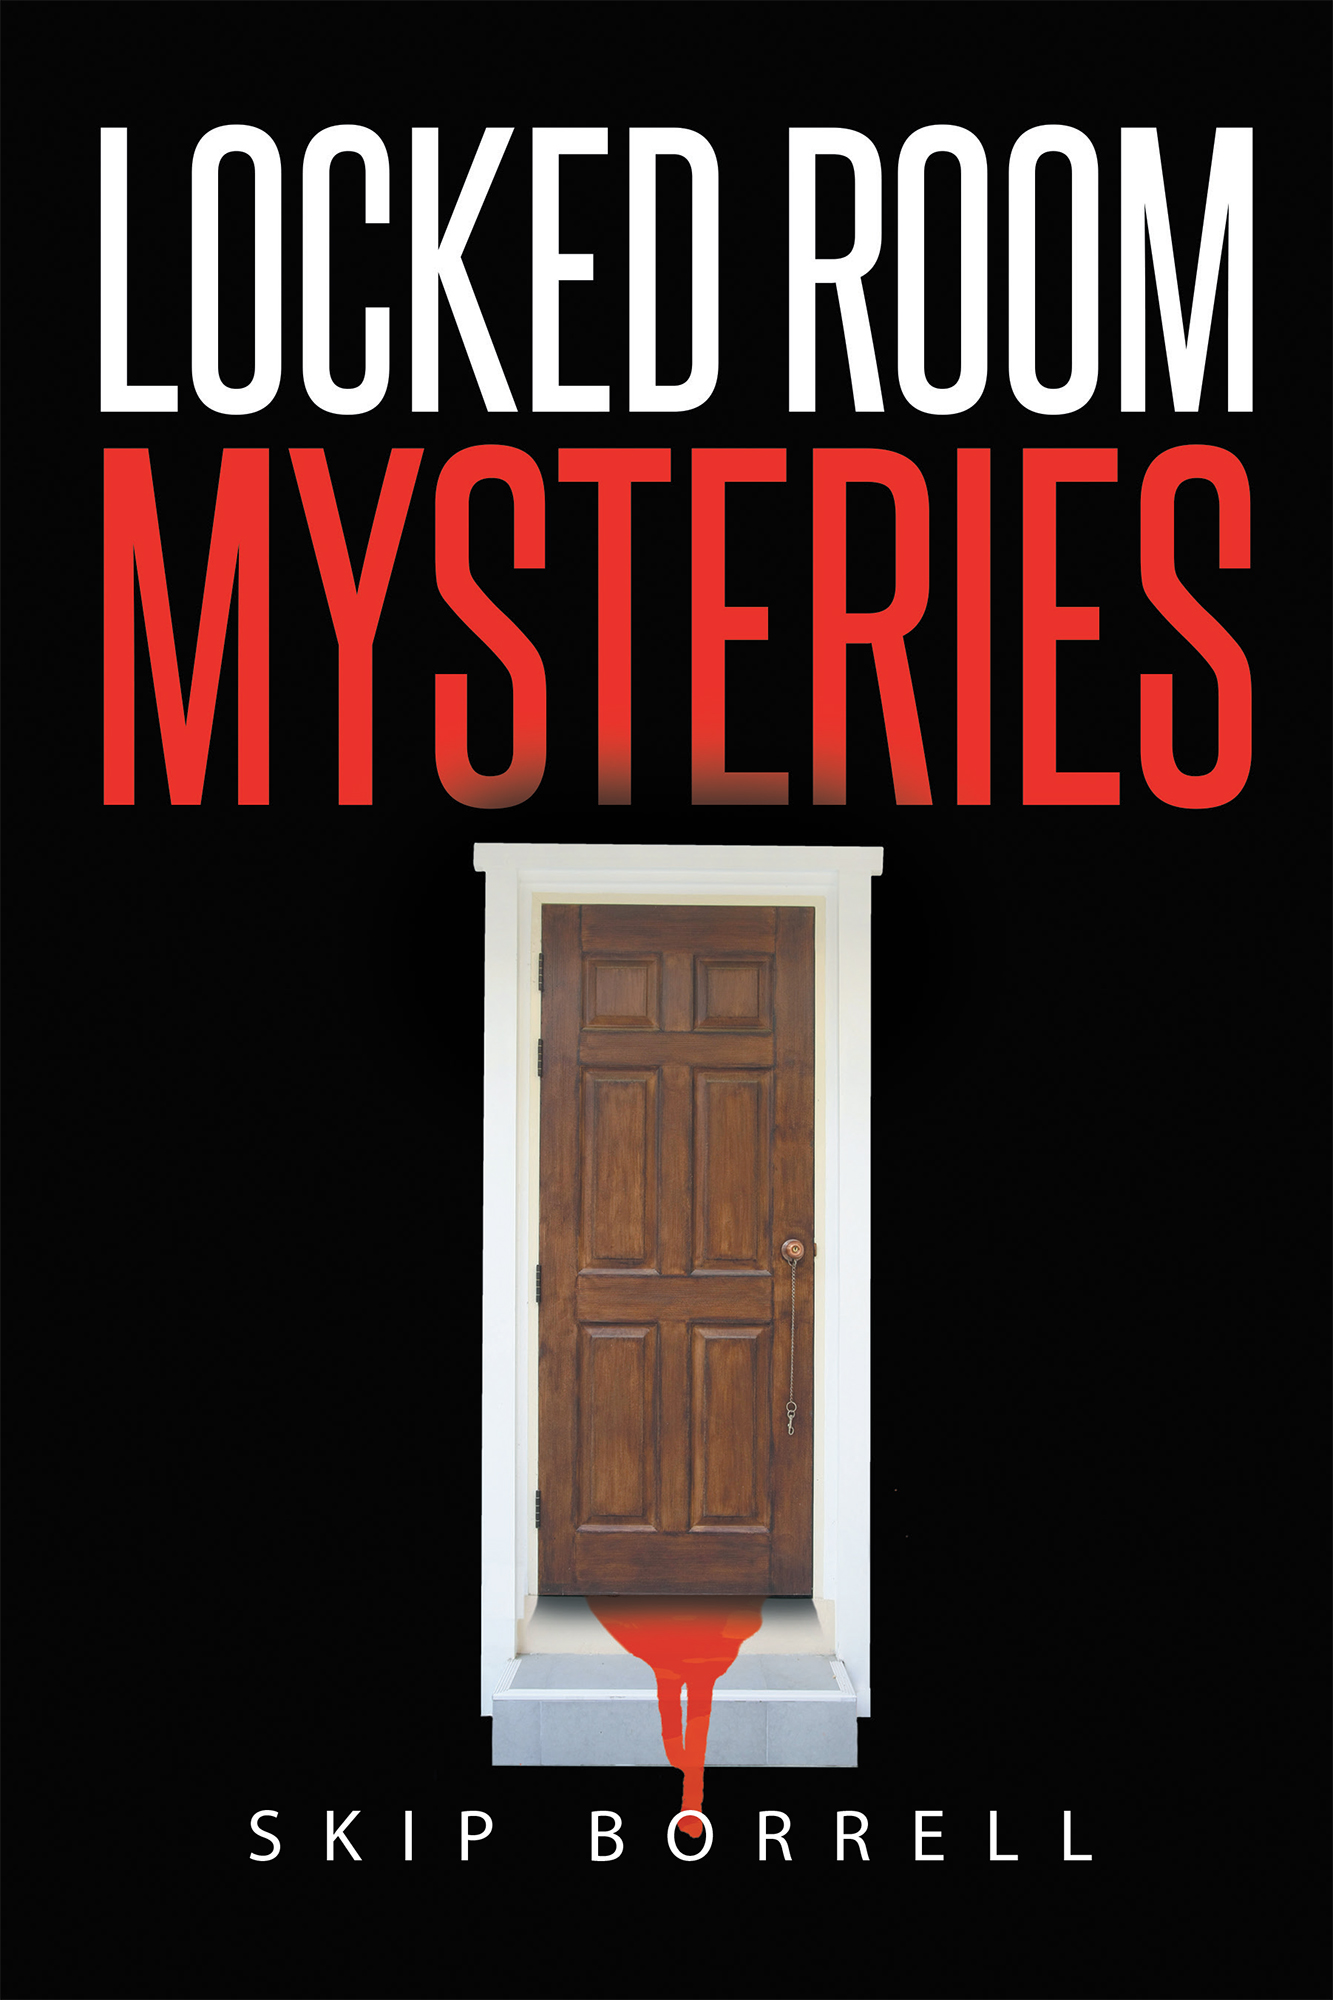 "an analysis of the lucias room of the mysteries The murder room is my first trip with p d james, and my first foray into the good ole fashion ""whodunnit"" genre of books since i was a kid, and we were trying to find out who made off with the cookies, or which teacher is actually an alien."